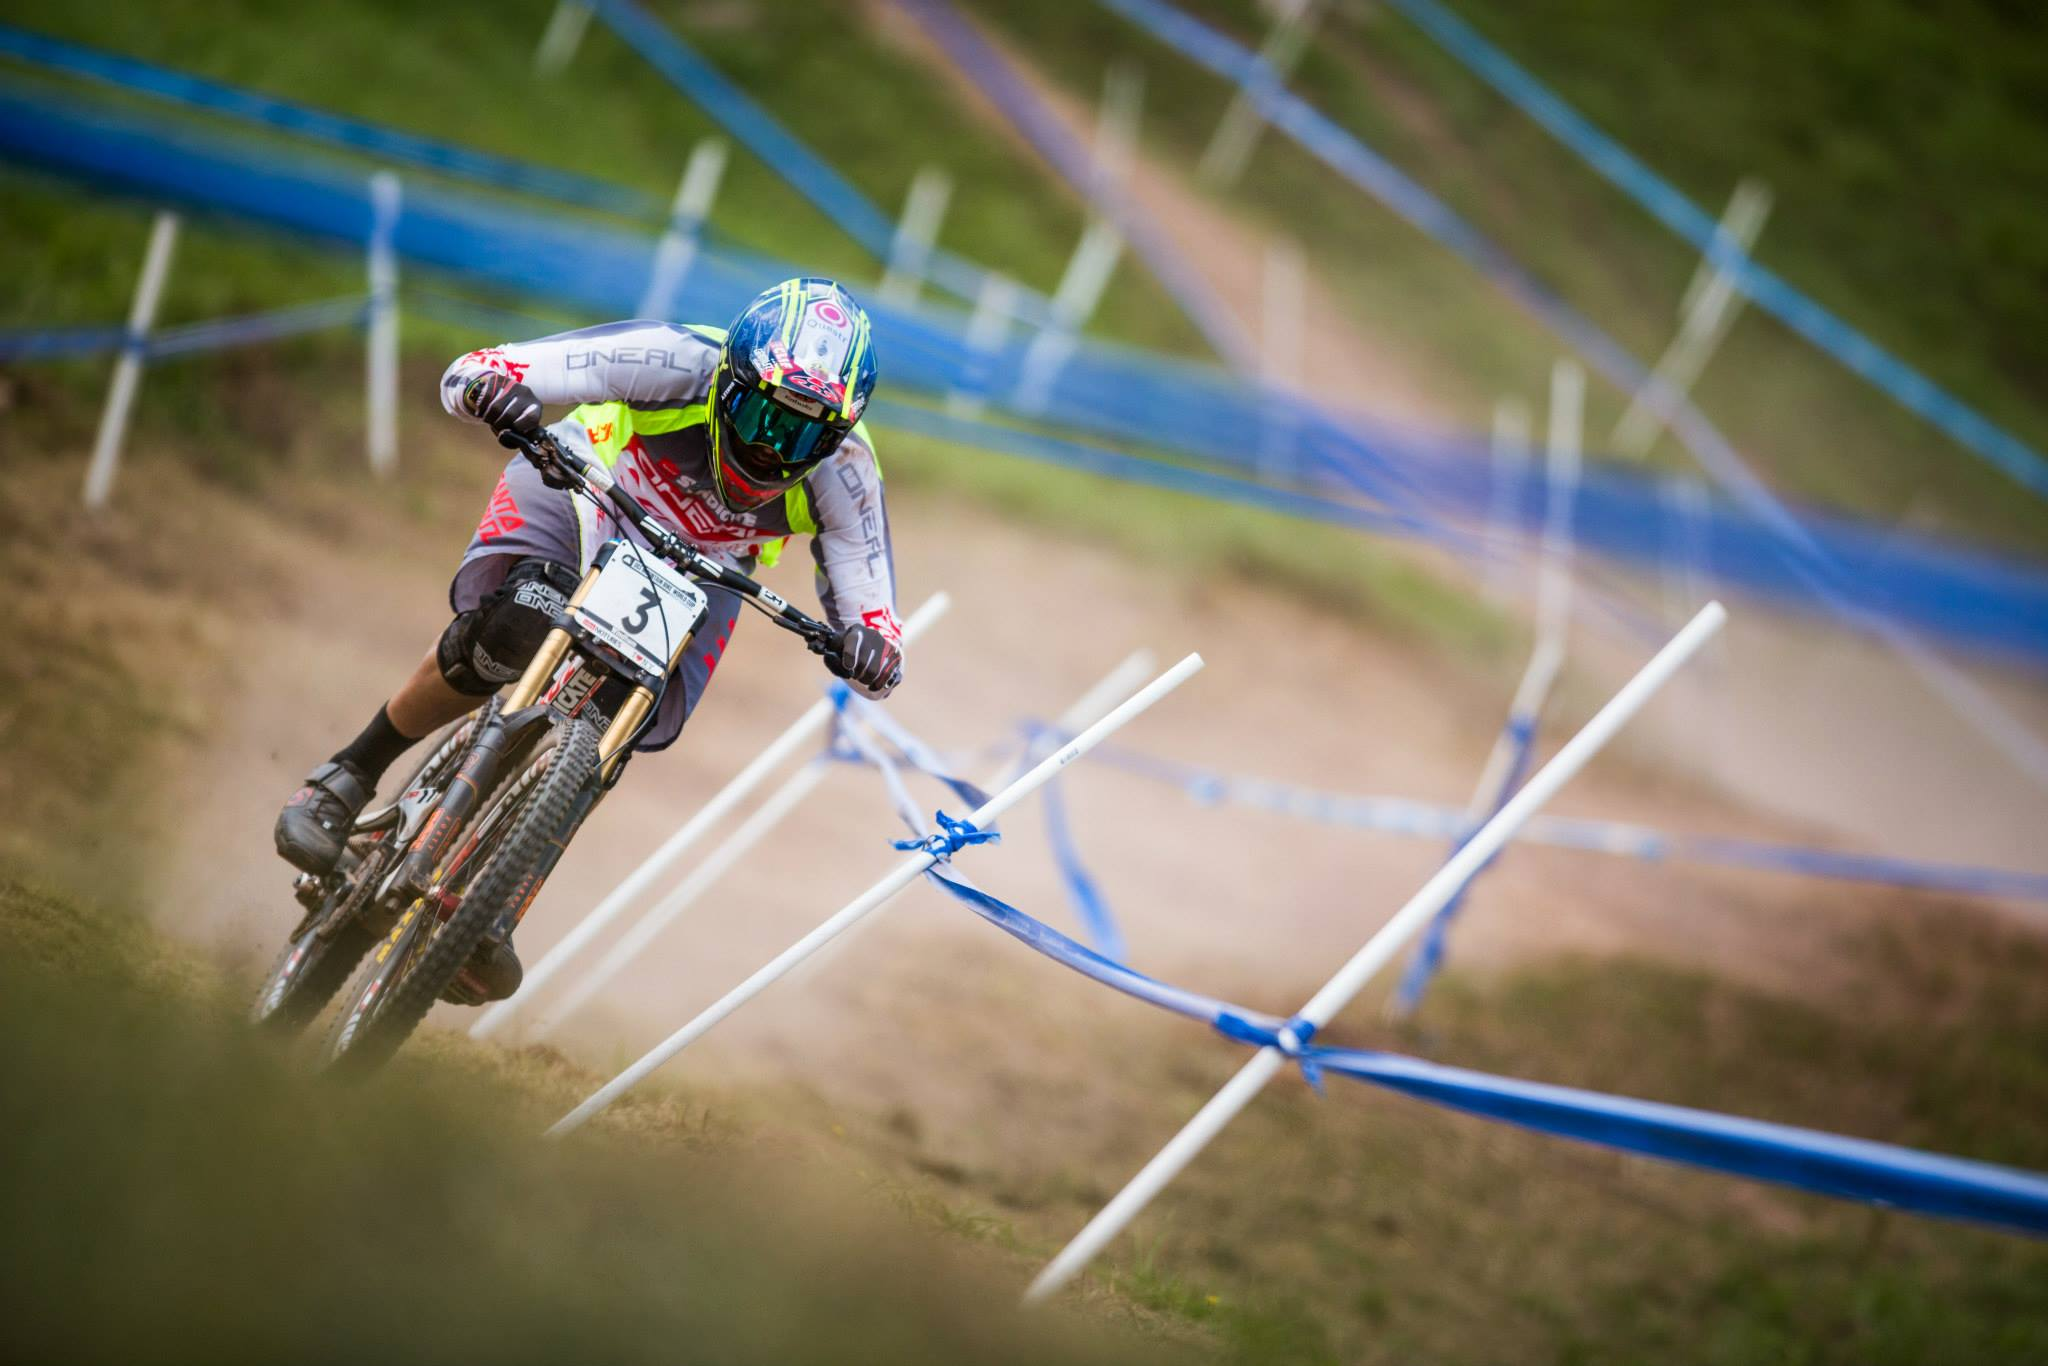 Santa Cruz Syndicate rider and three-times World Champion, Greg Minnaar, continues to make South Africa proud with his season's success so far, and is ready to take on the final round of the UCI DHI World Cup Final in Italy next month. Photo credit: UCI MTB World Cup https://www.facebook.com/UCIMTBworldcup/photos